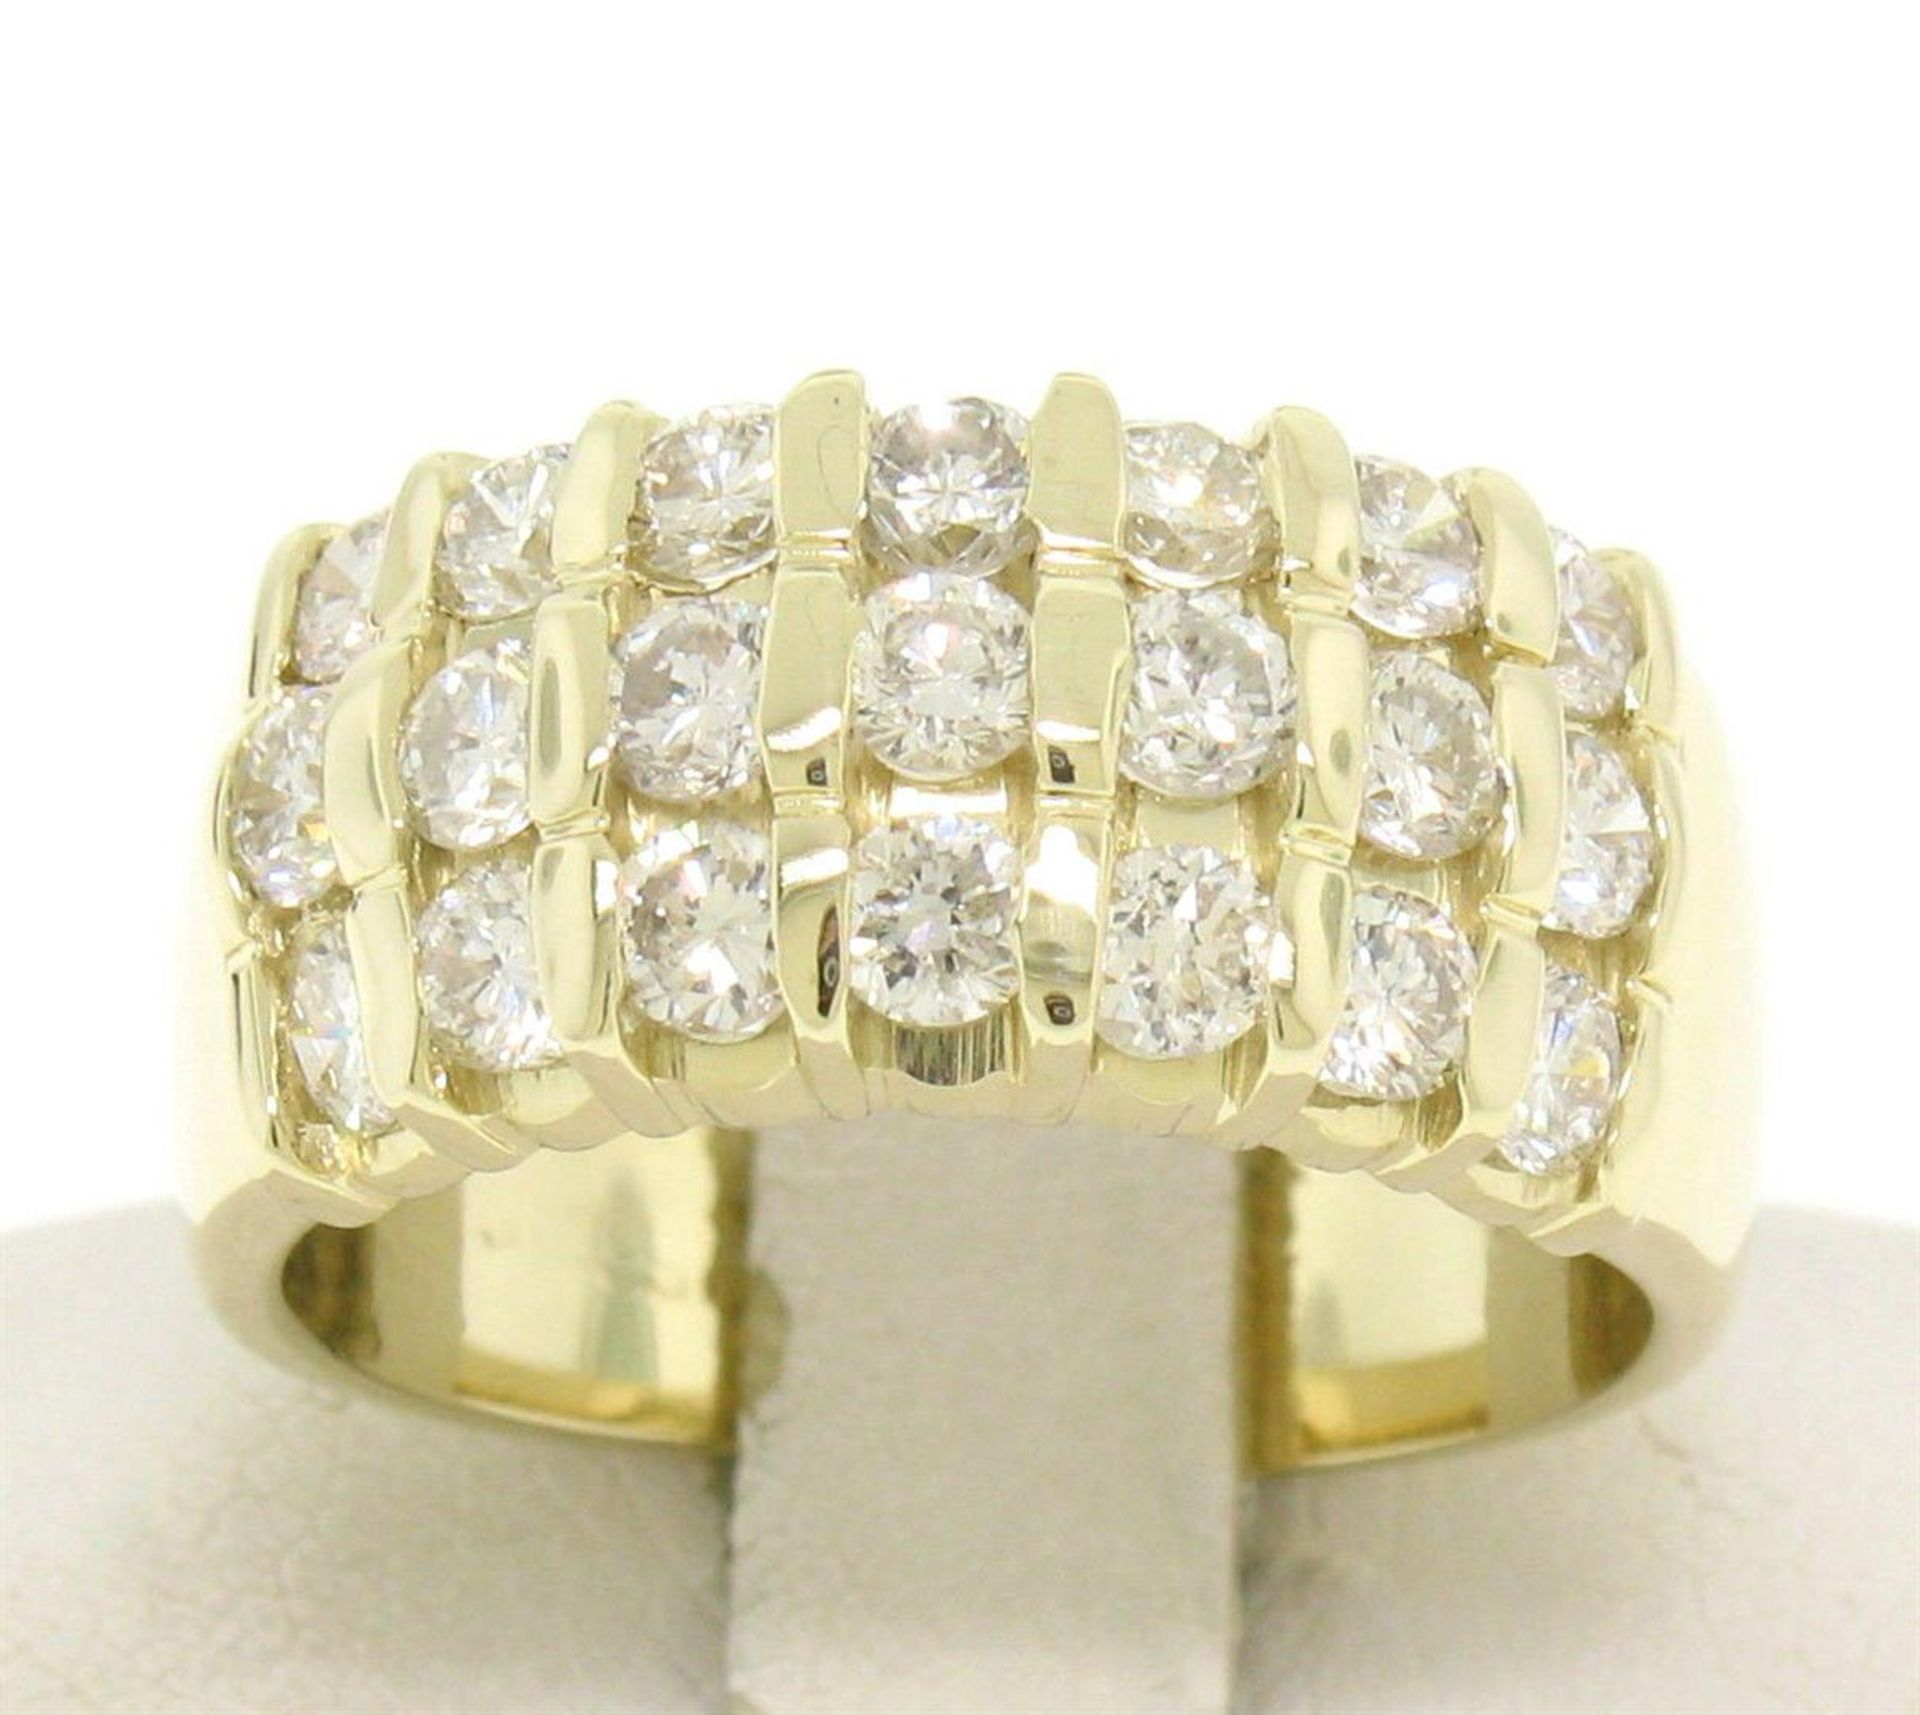 14kt Yellow Gold 1.48 ctw Bar Set Round Diamond Wide Band Ring - Image 2 of 7